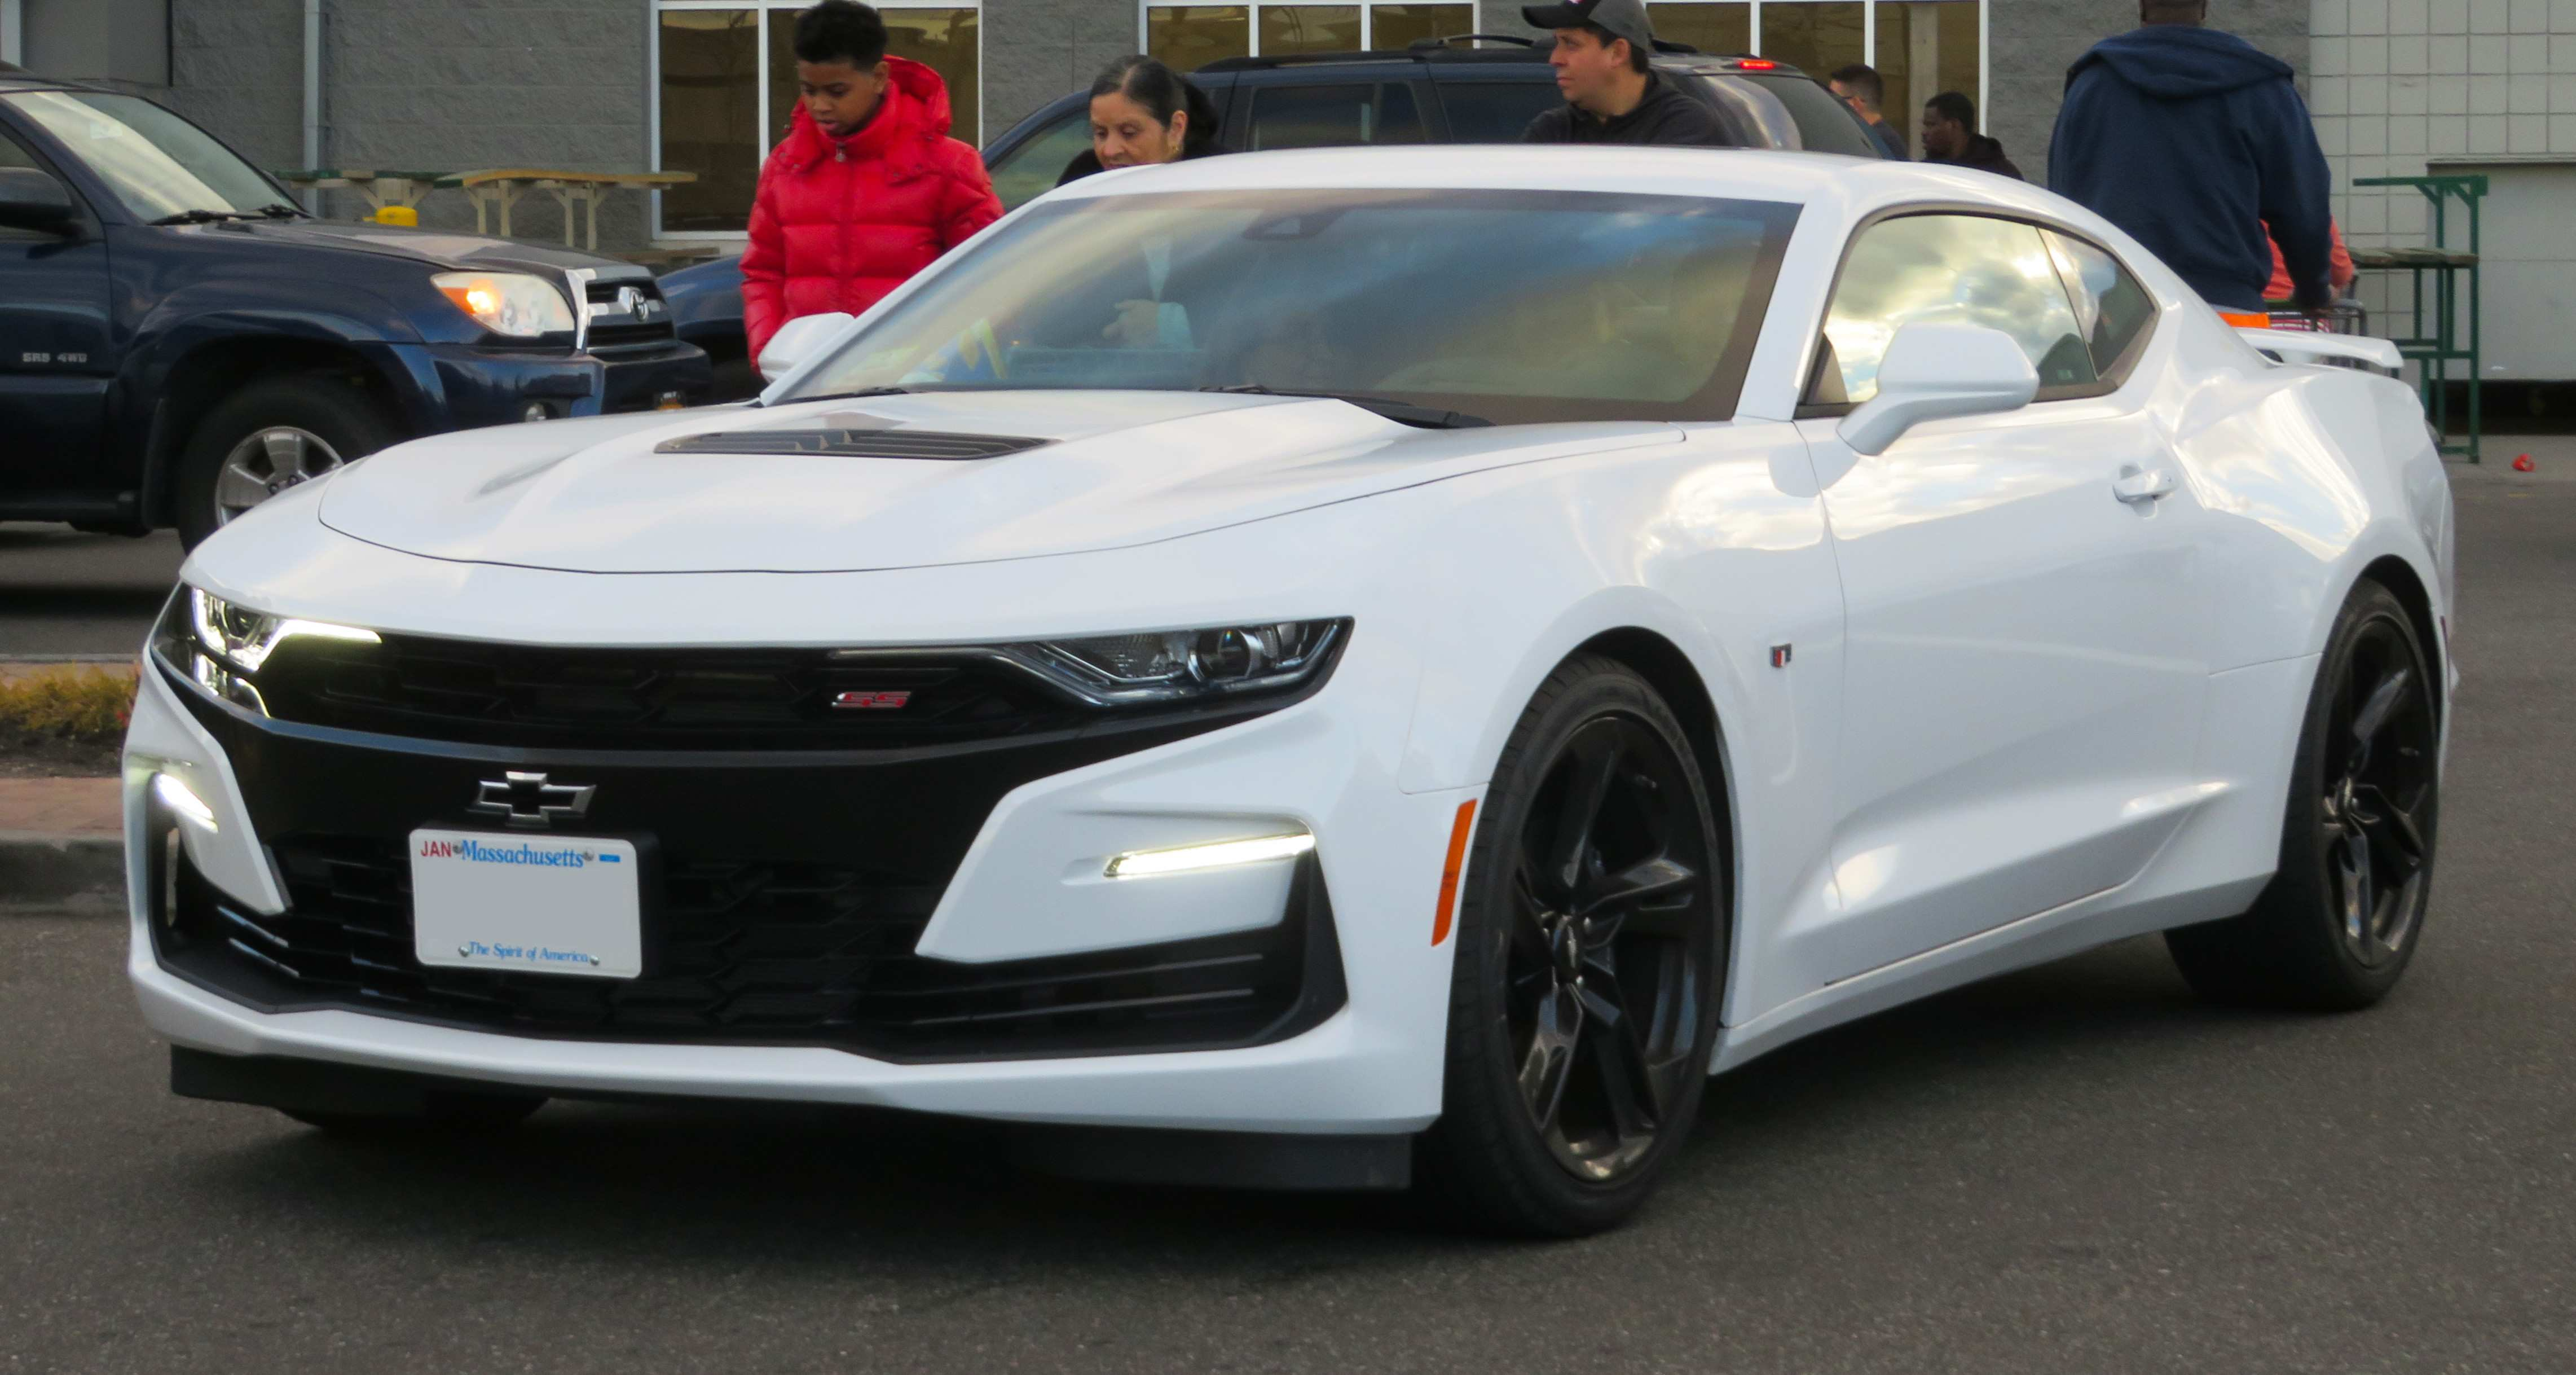 97 All New 2020 Chevrolet Camaro Zl1 1Le Review for 2020 Chevrolet Camaro Zl1 1Le